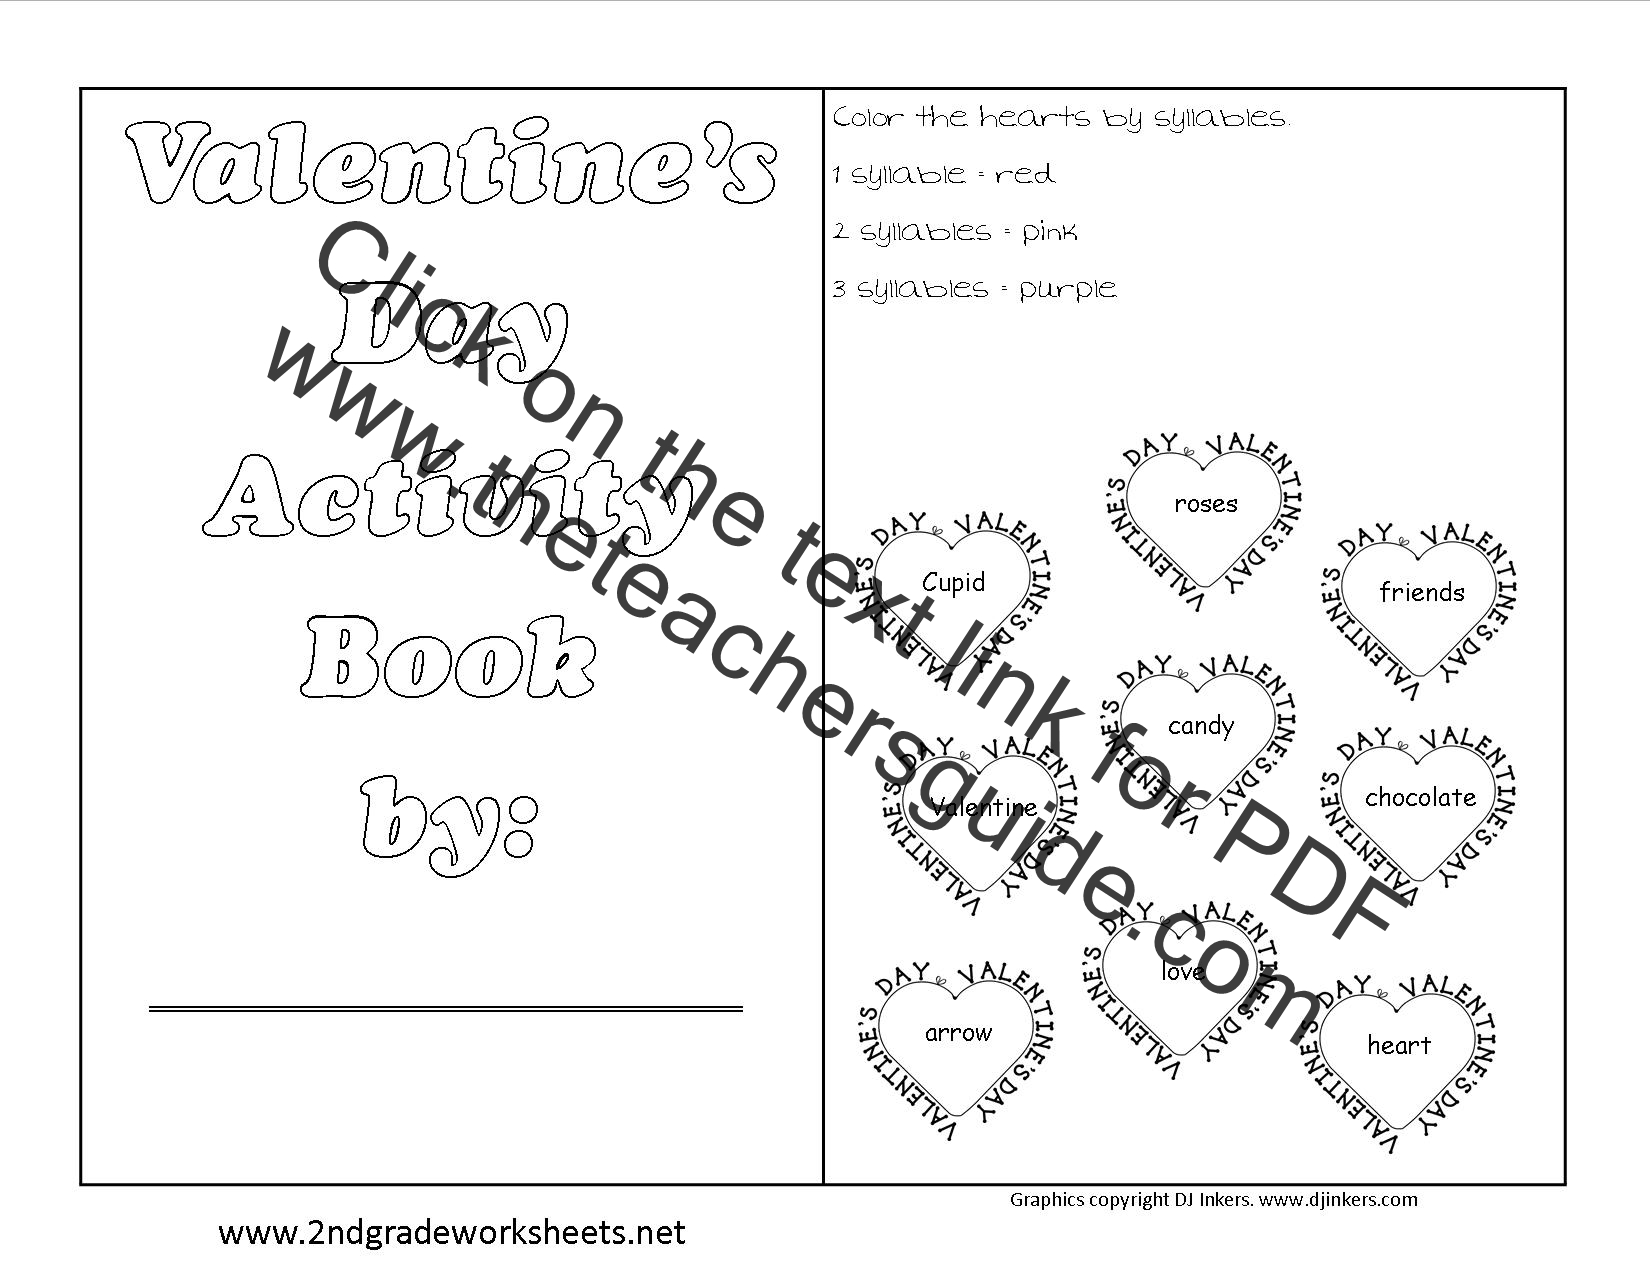 Day Printouts and Worksheets